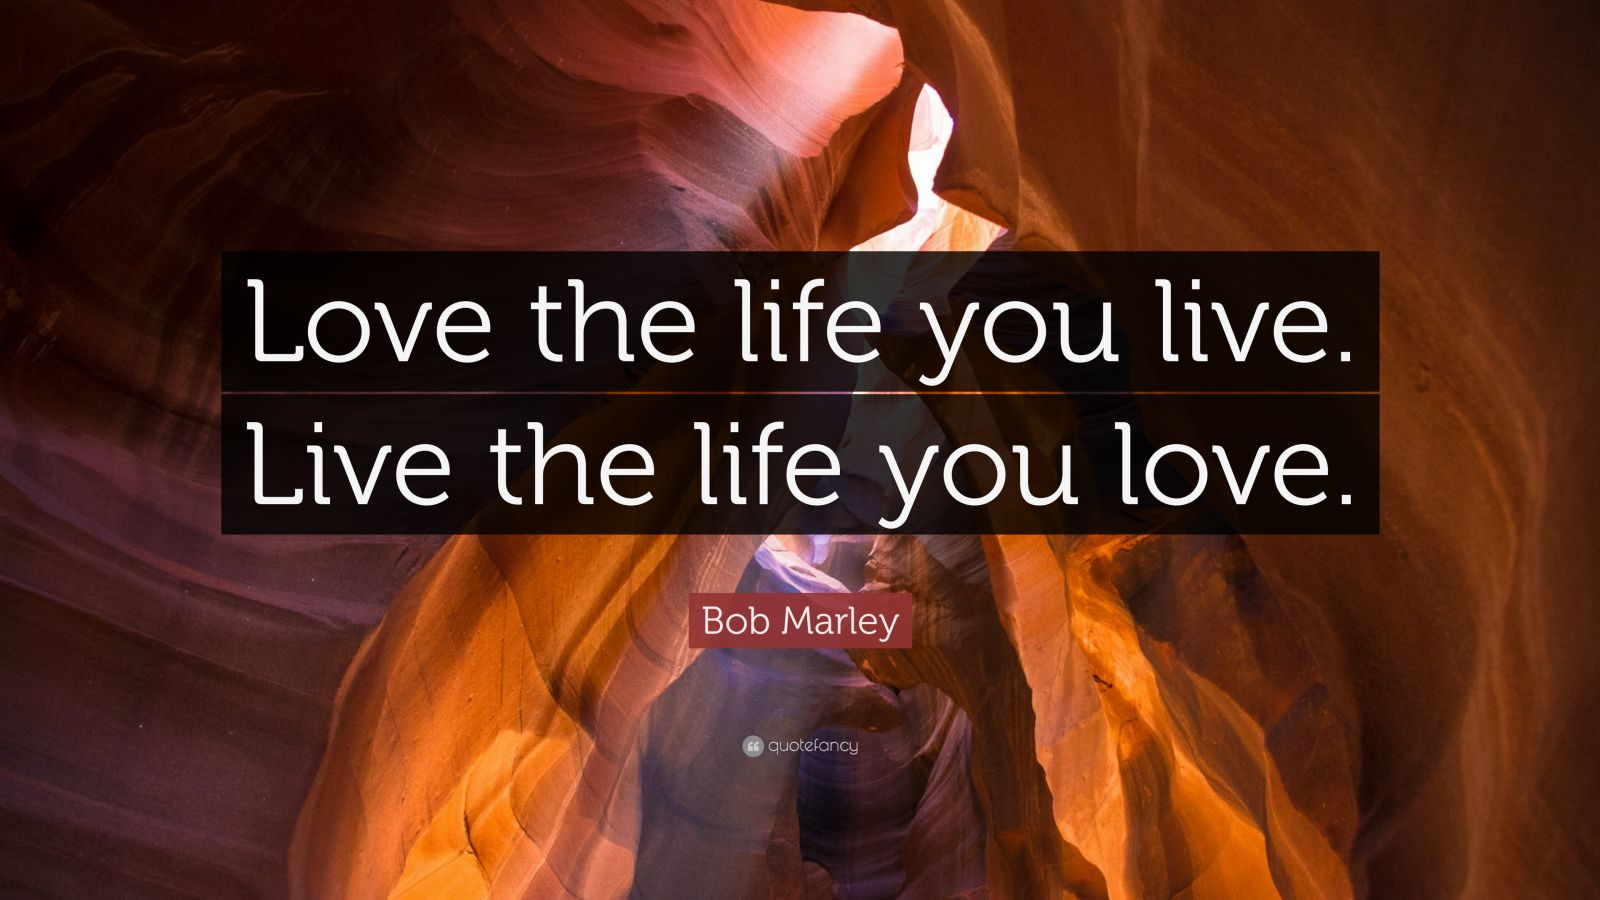 bob marley quote love the life you live live the life